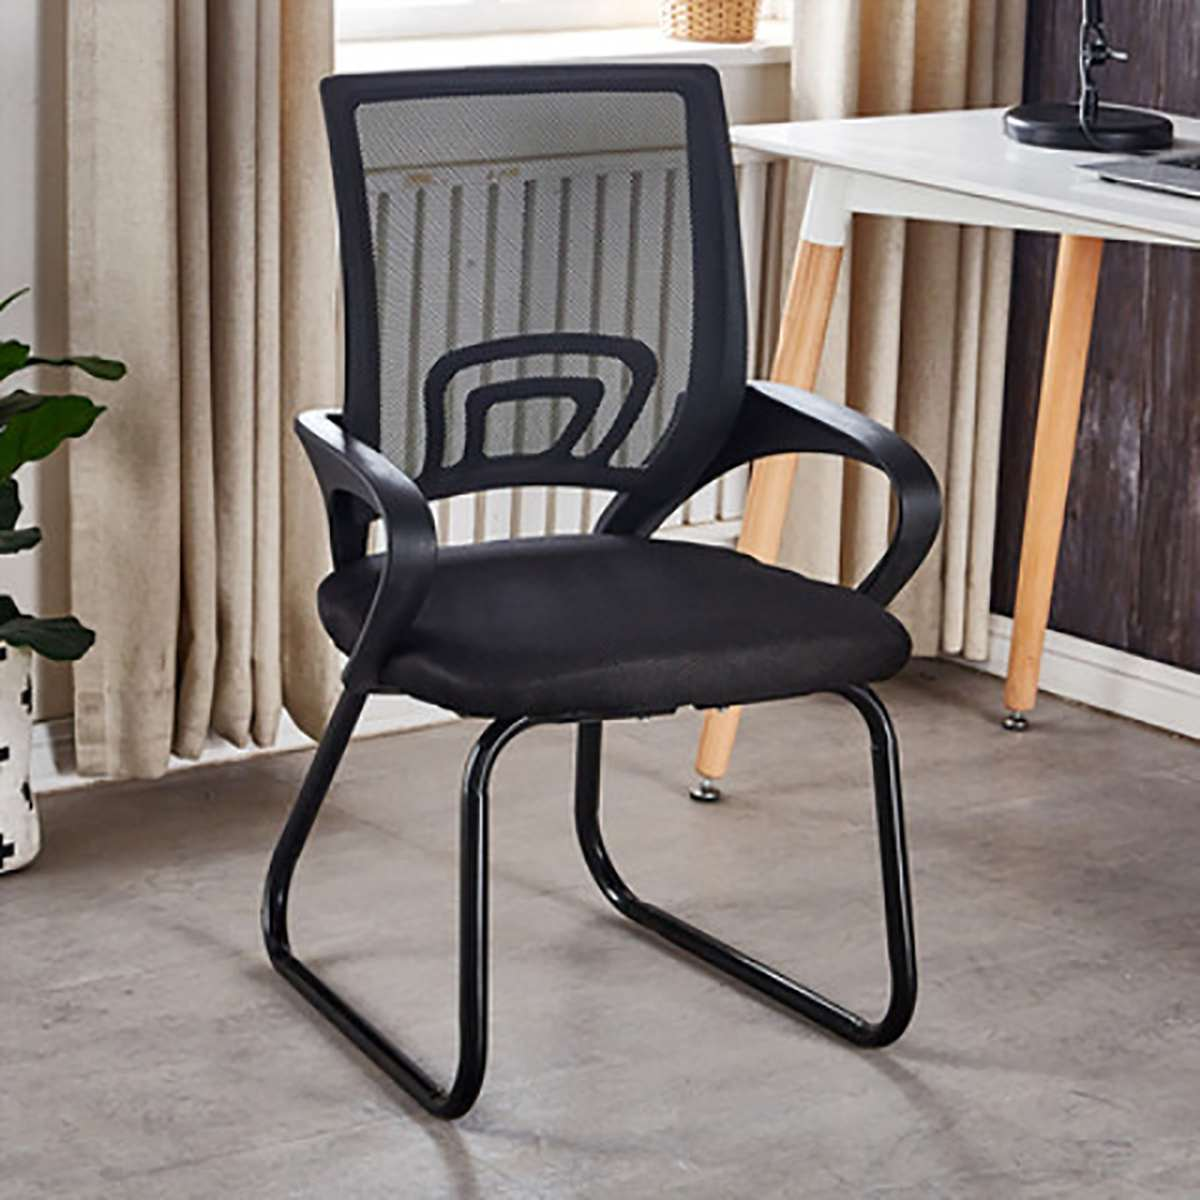 Ergonomic Office Chair Computer Chair Home Mesh Chair Staff Conference Chair Student Dormitory Bow Seat Black